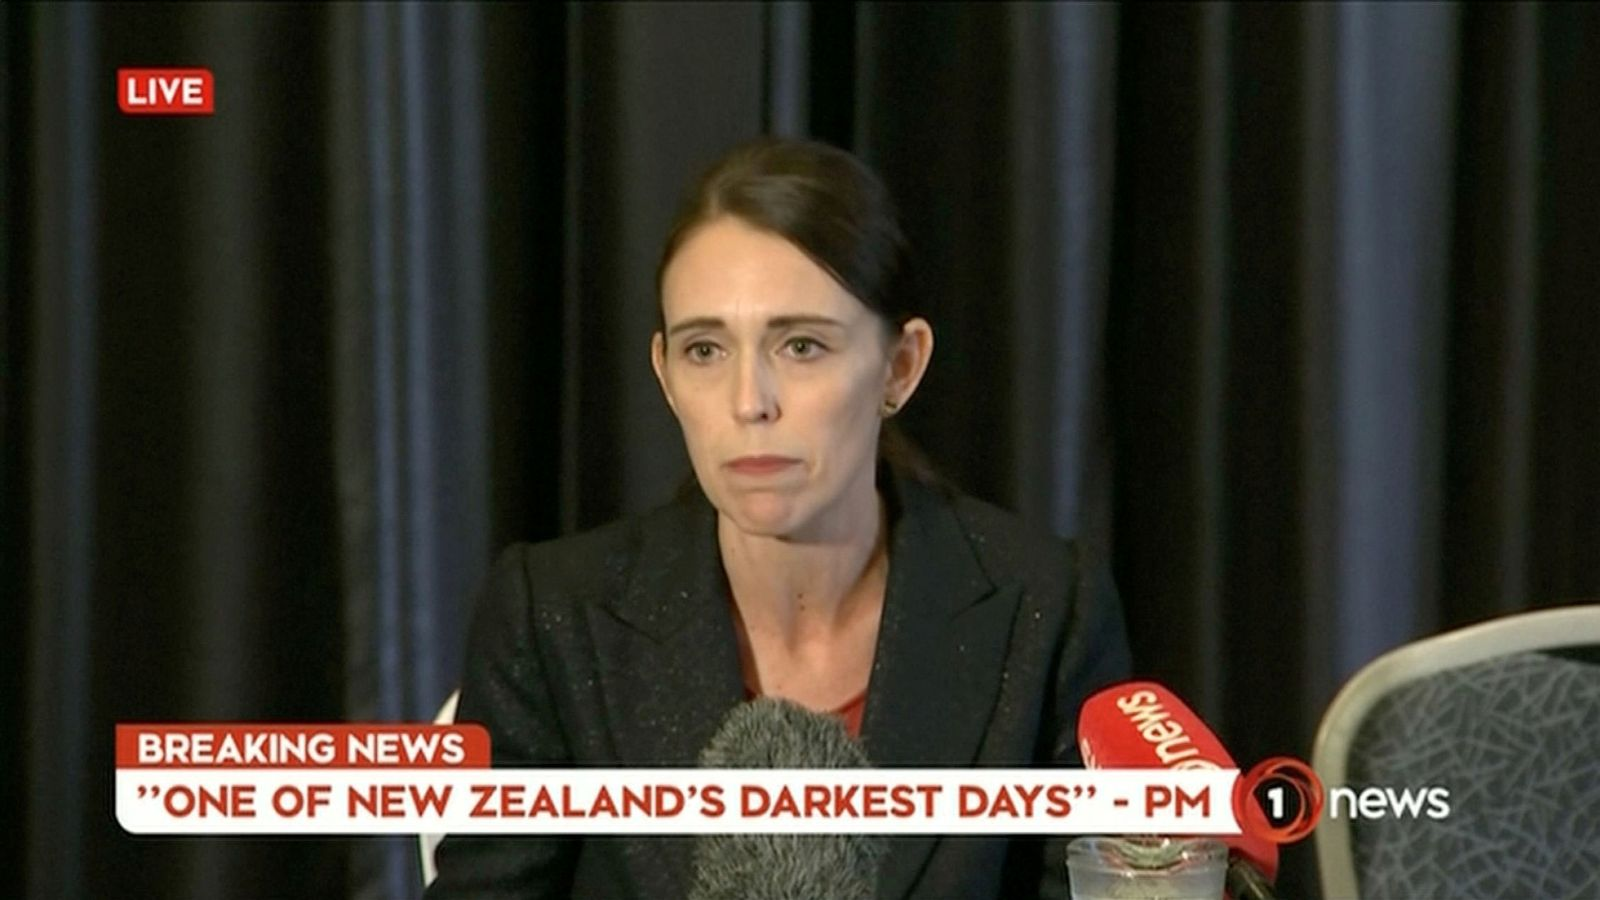 Foto: Video grab of new zealand's prime minister jacinda ardern speaking on live television following fatal shootings at two mosques in central christchurch